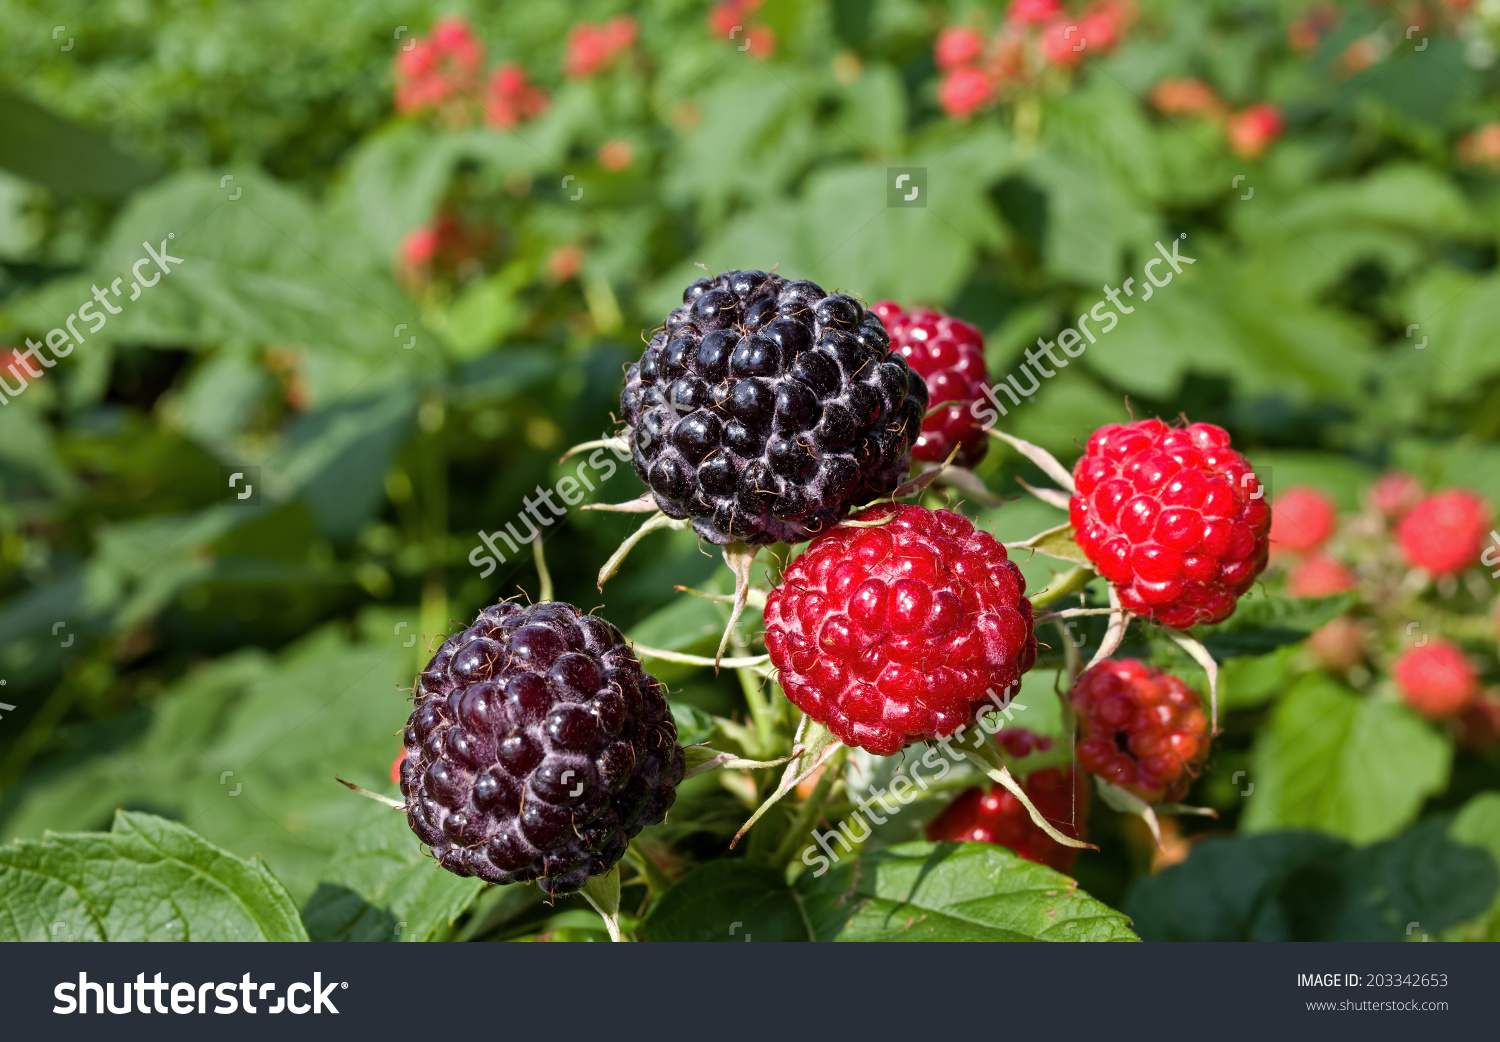 Raspberry Is The Edible Fruit Of A Multitude Of Plant Species In.